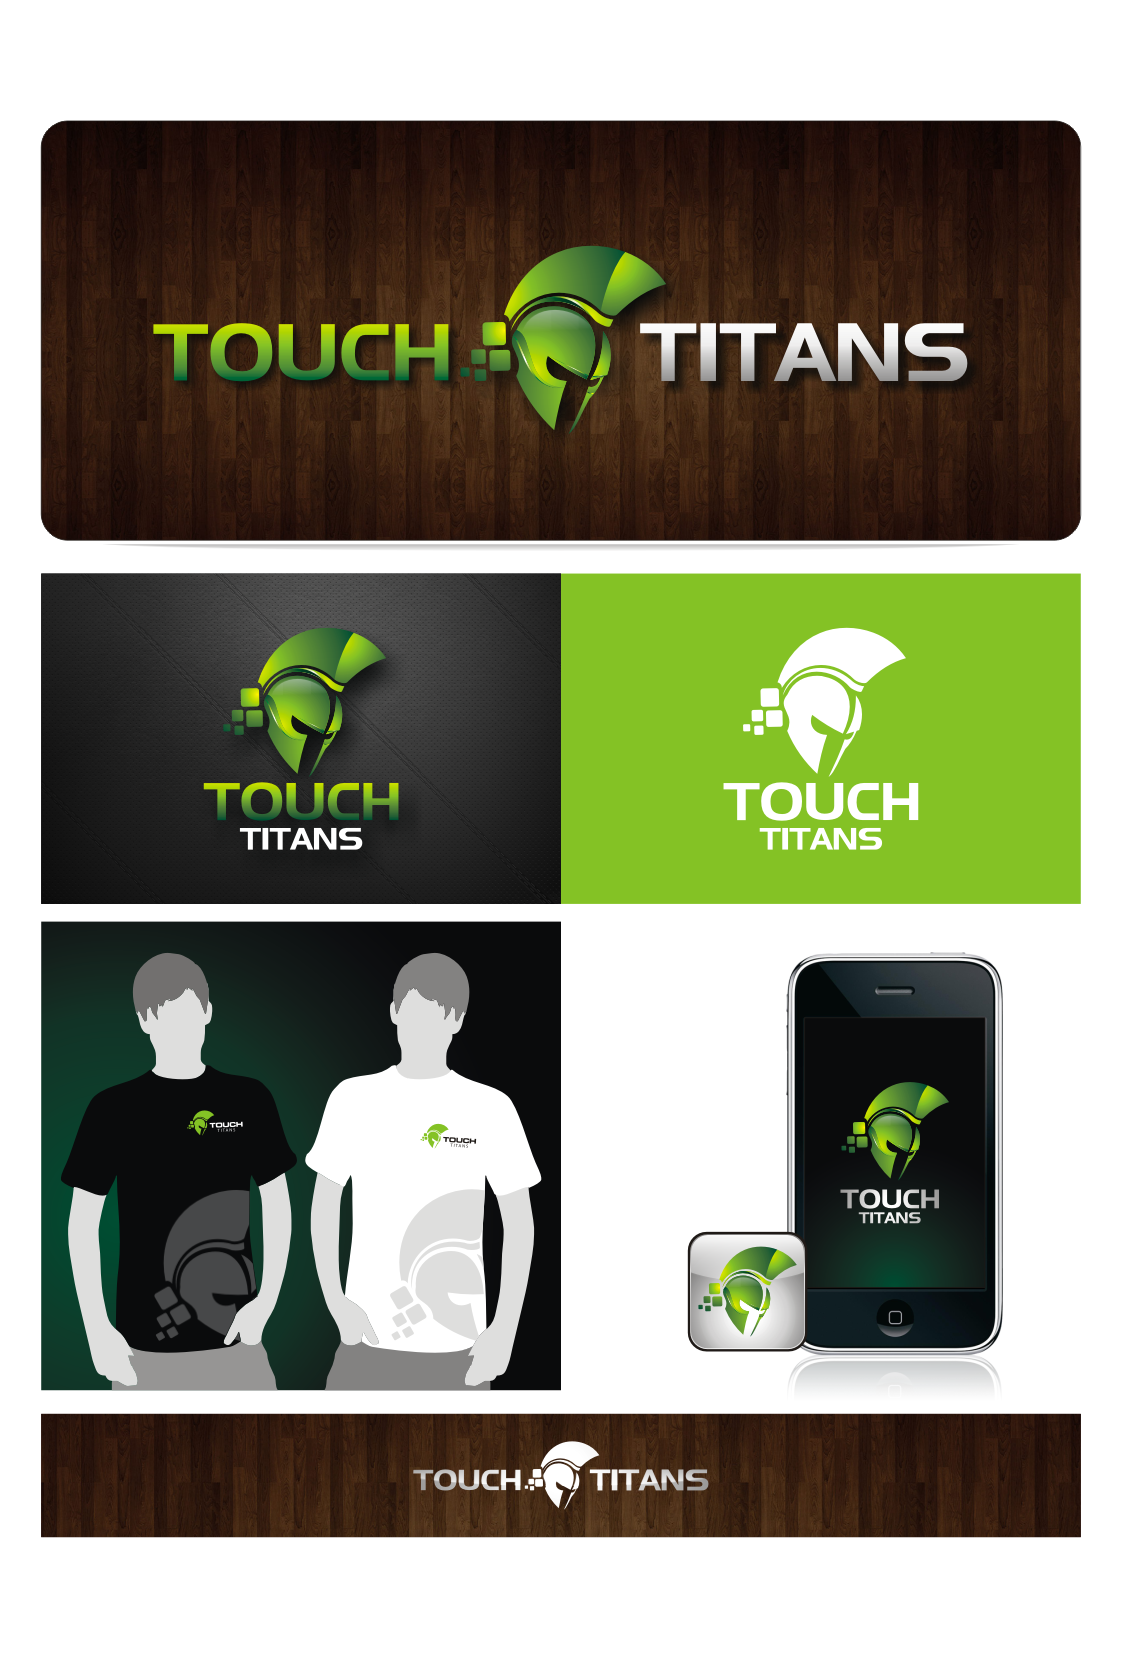 New logo wanted for Touch Titans